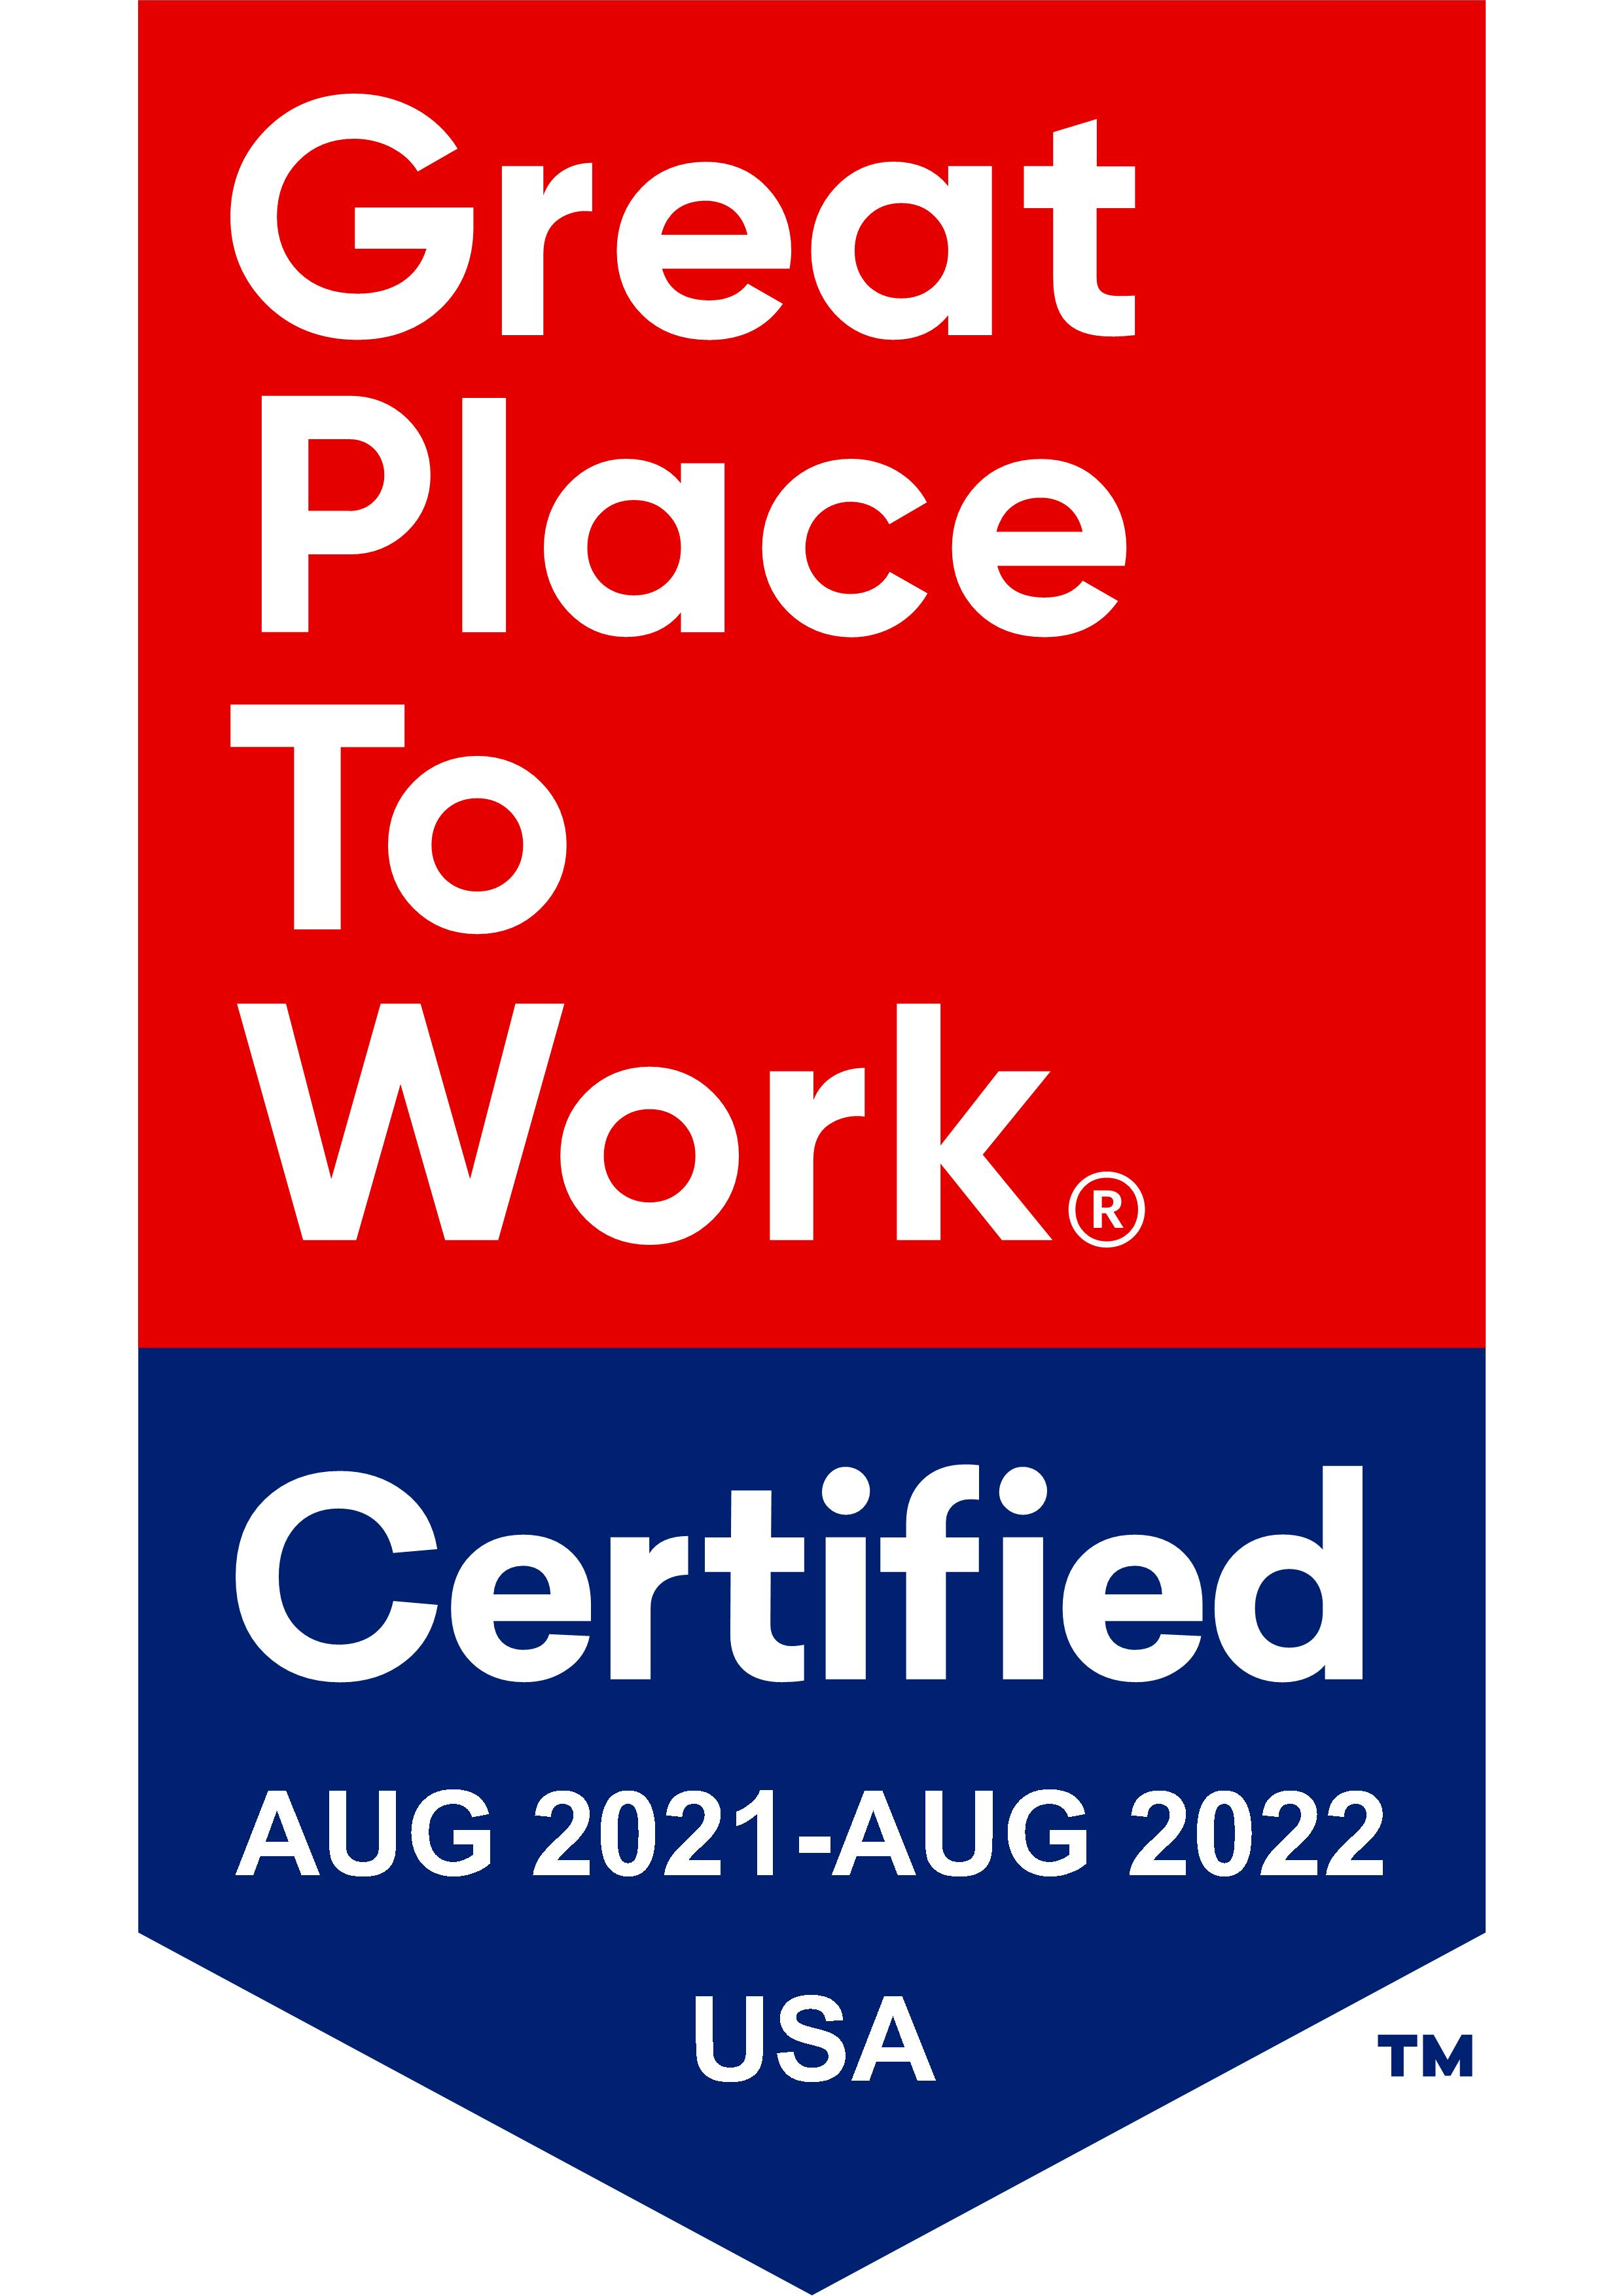 Great Place to Work Certified.